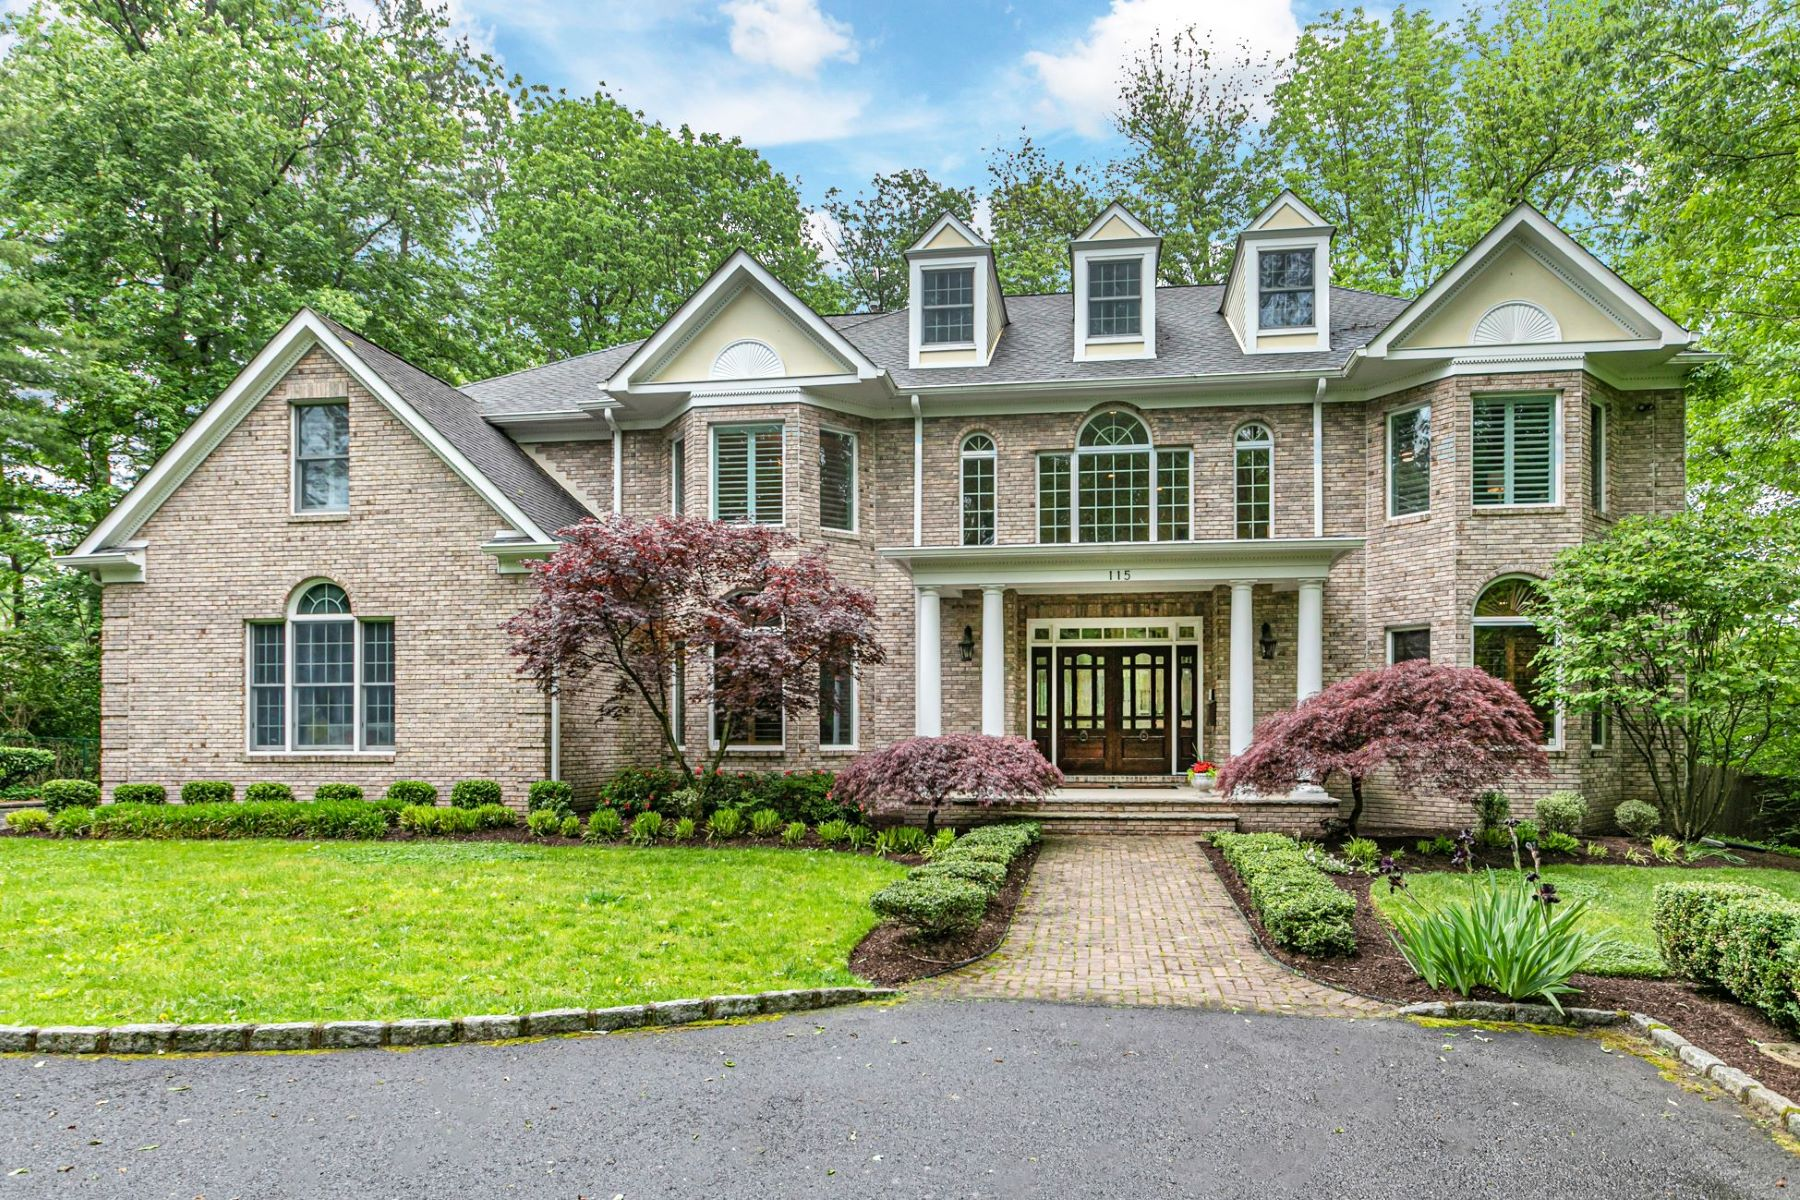 Property for Sale at As Peaceful as it is Pristine 115 Lafayette Road, Princeton, New Jersey 08540 United States